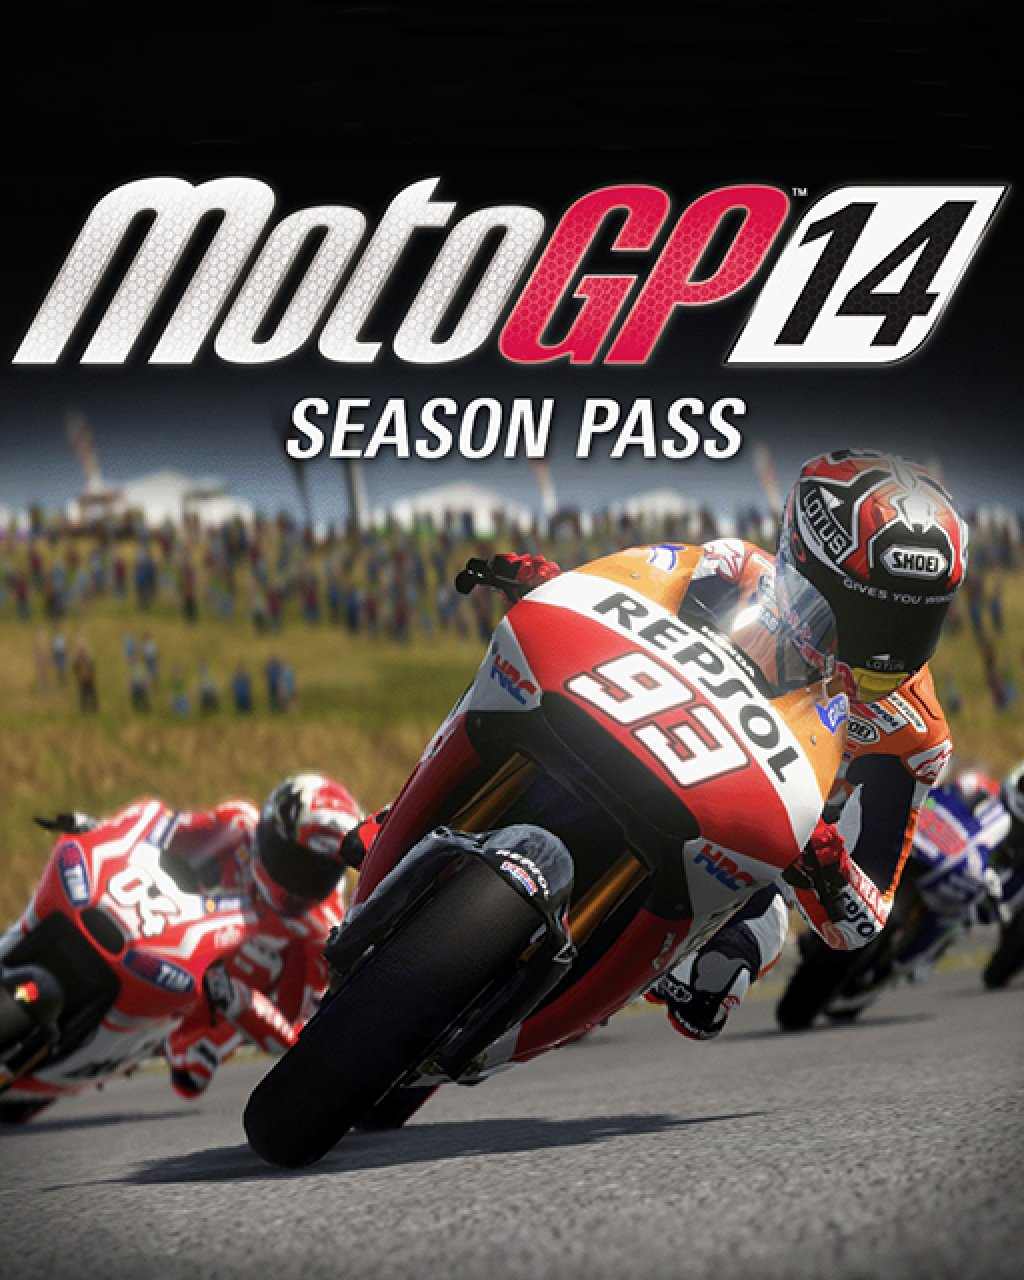 Moto GP 14 Season Pass